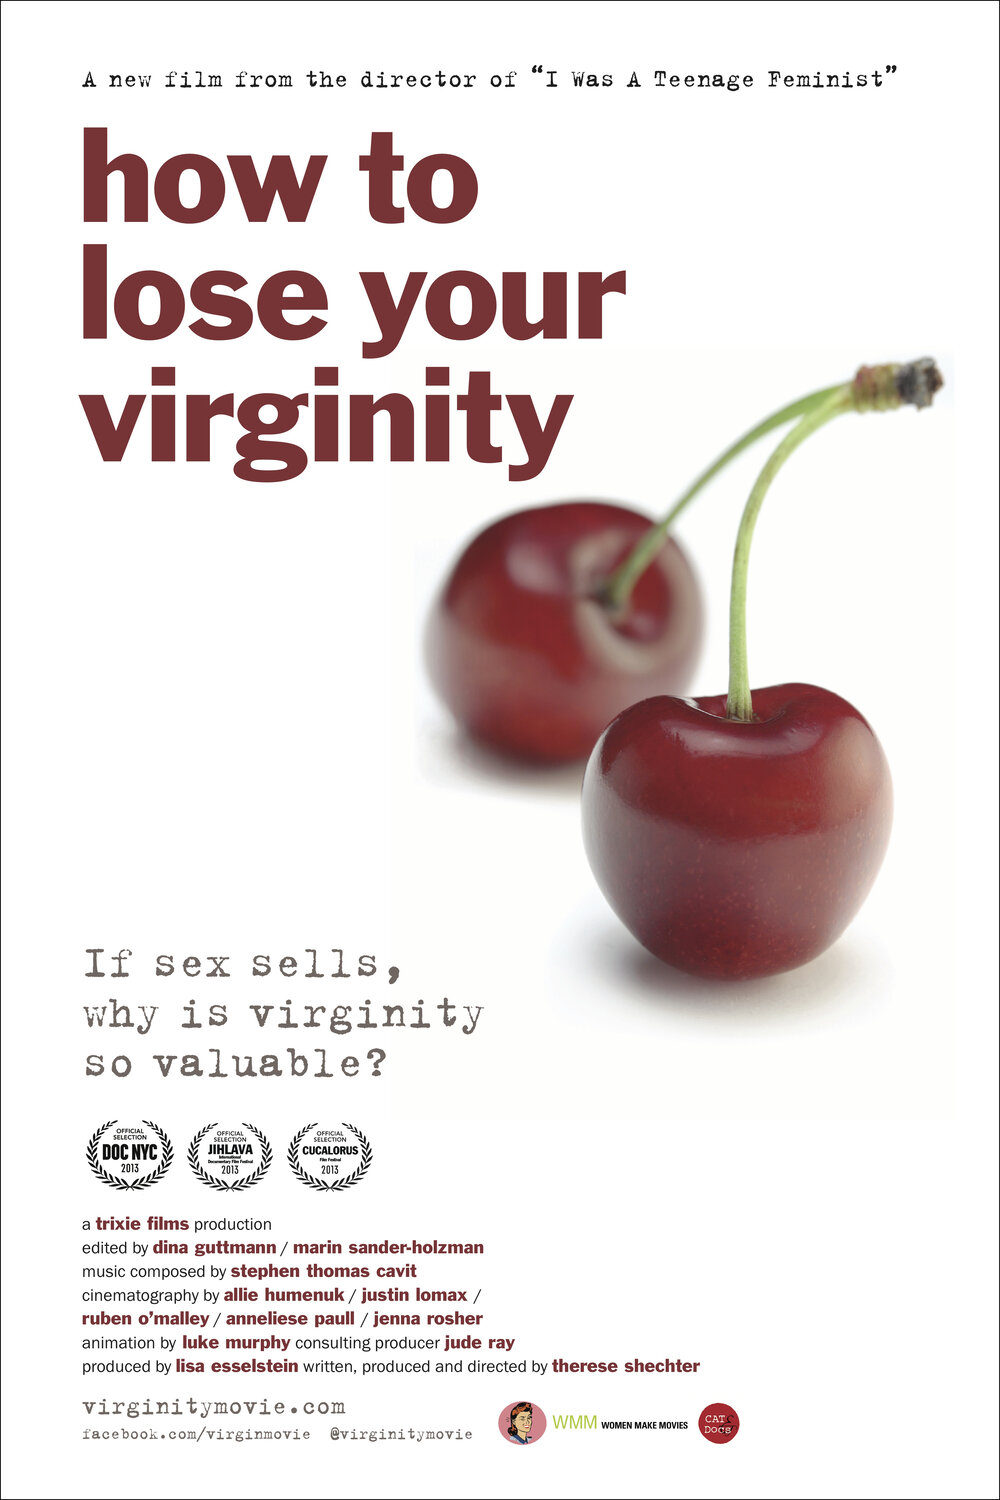 How do you know when to lose your virginity